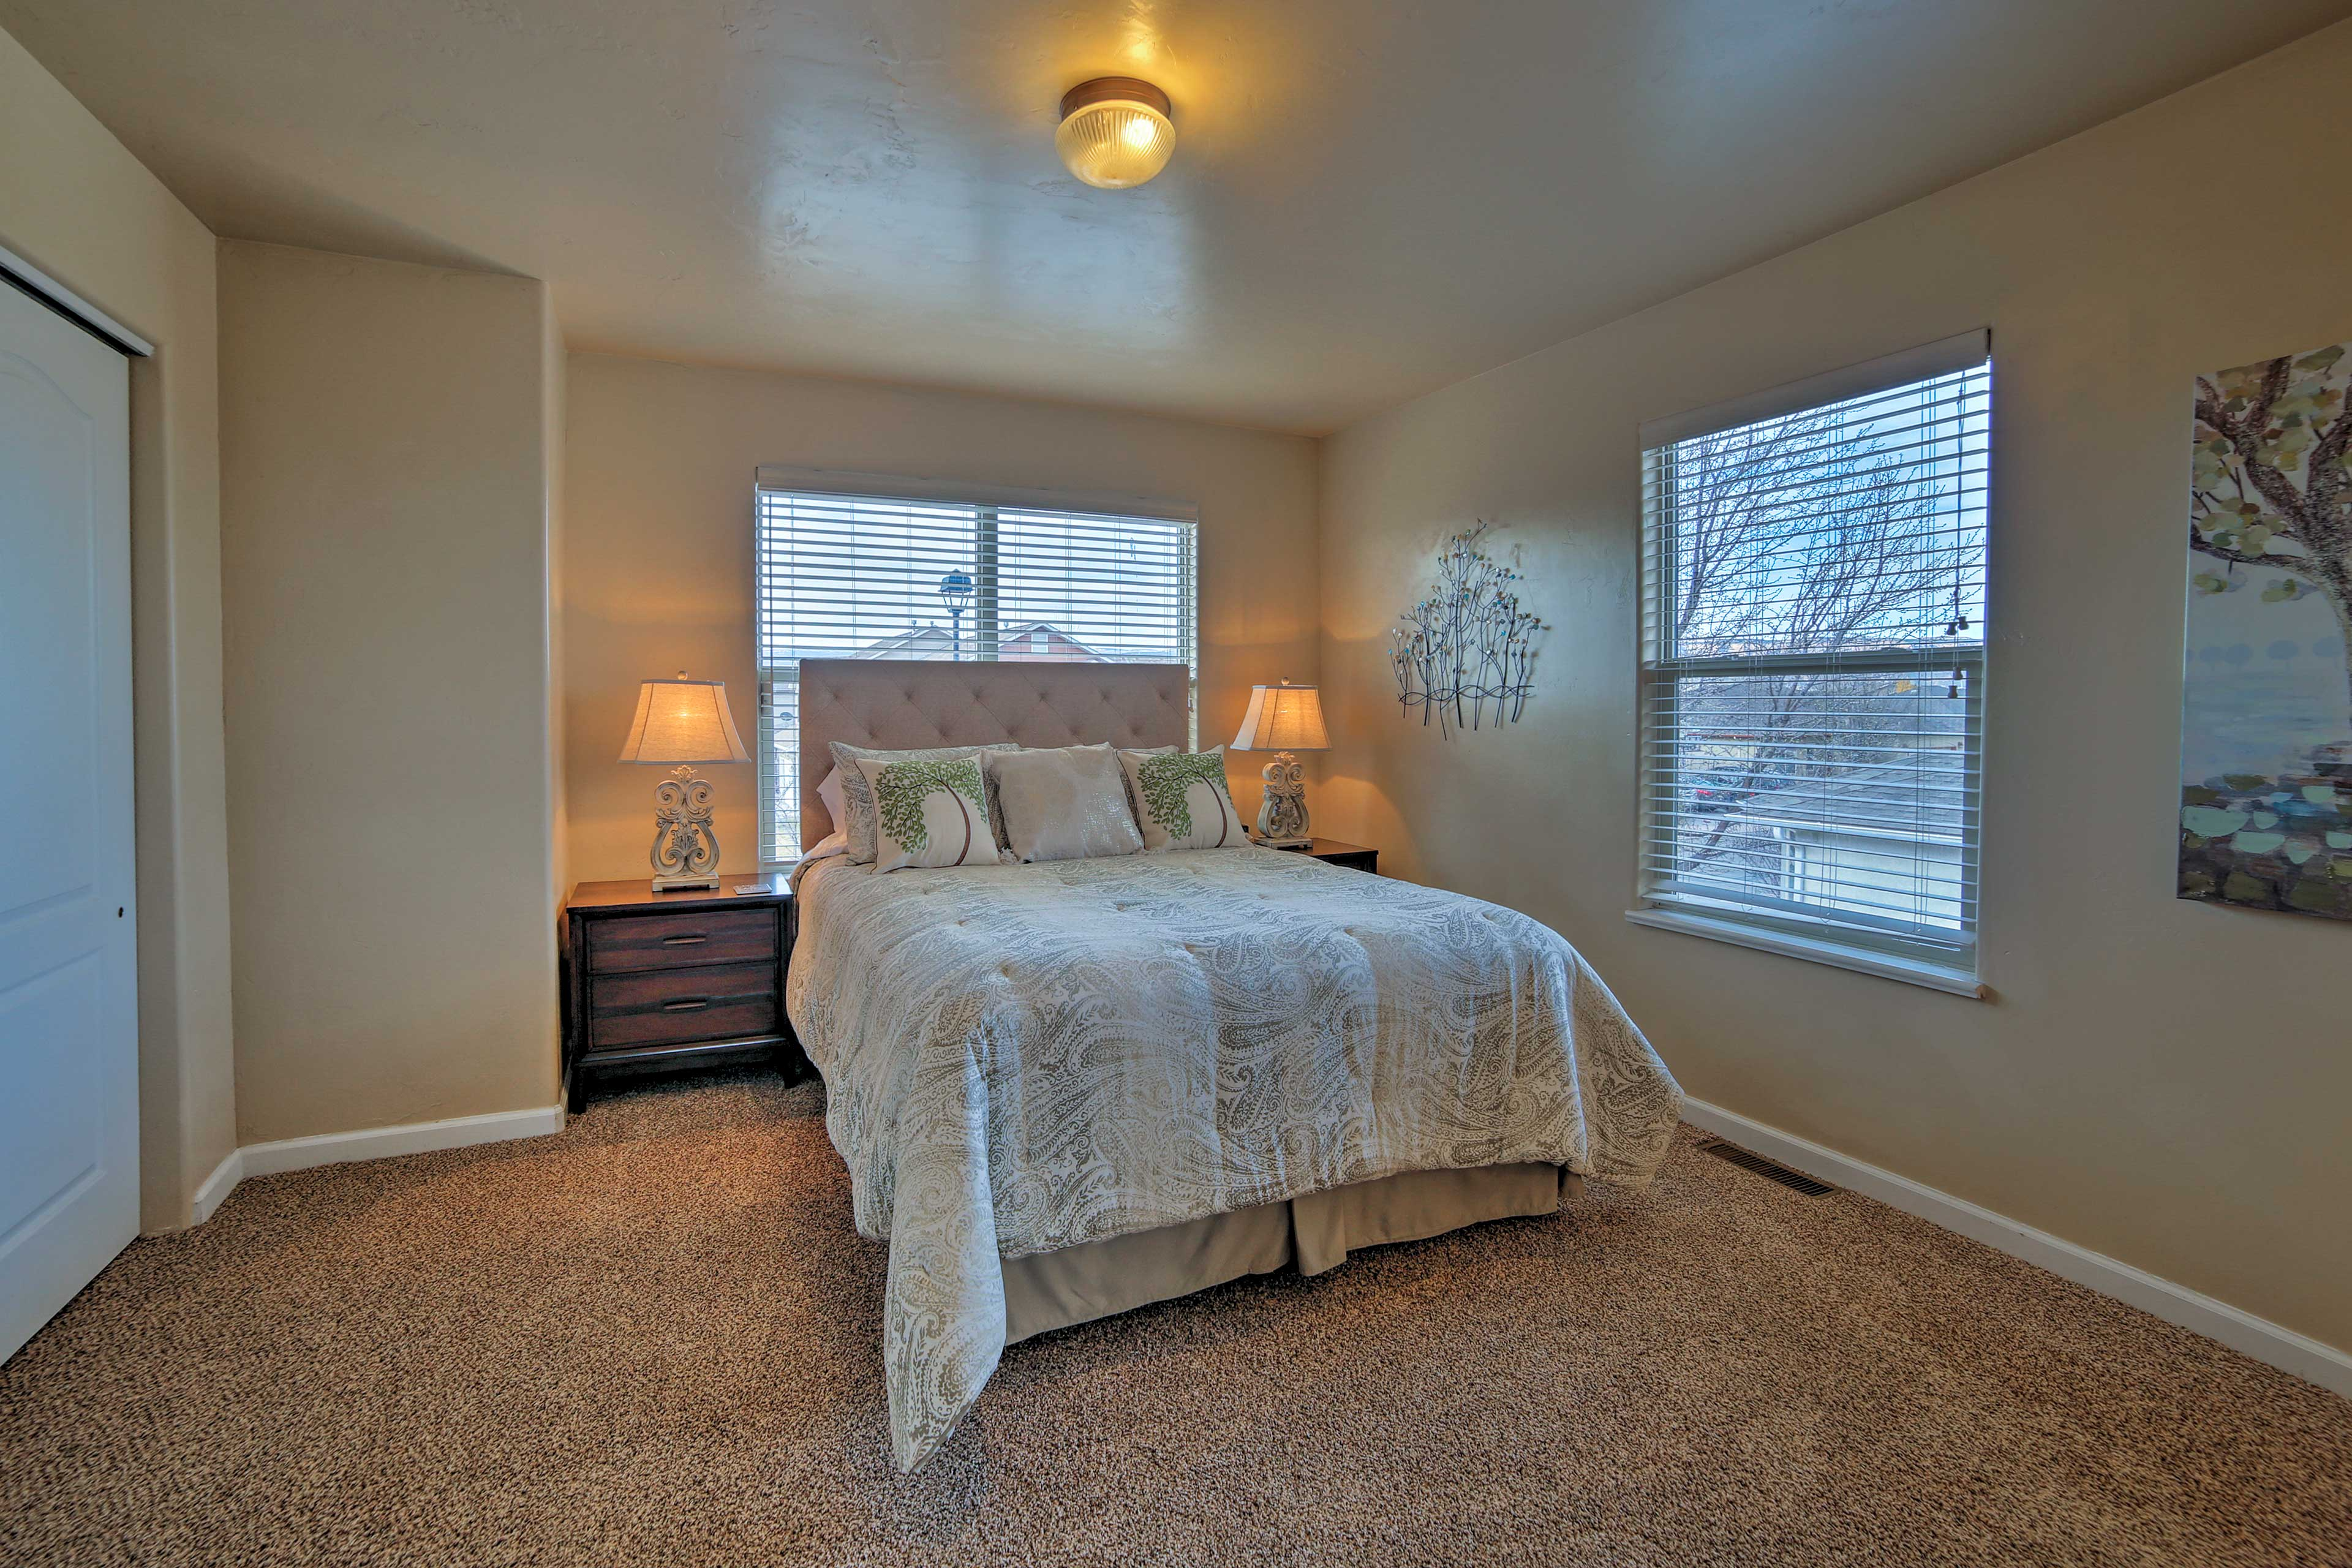 Wake up feeling refreshed from a sound sleep in this queen bed.